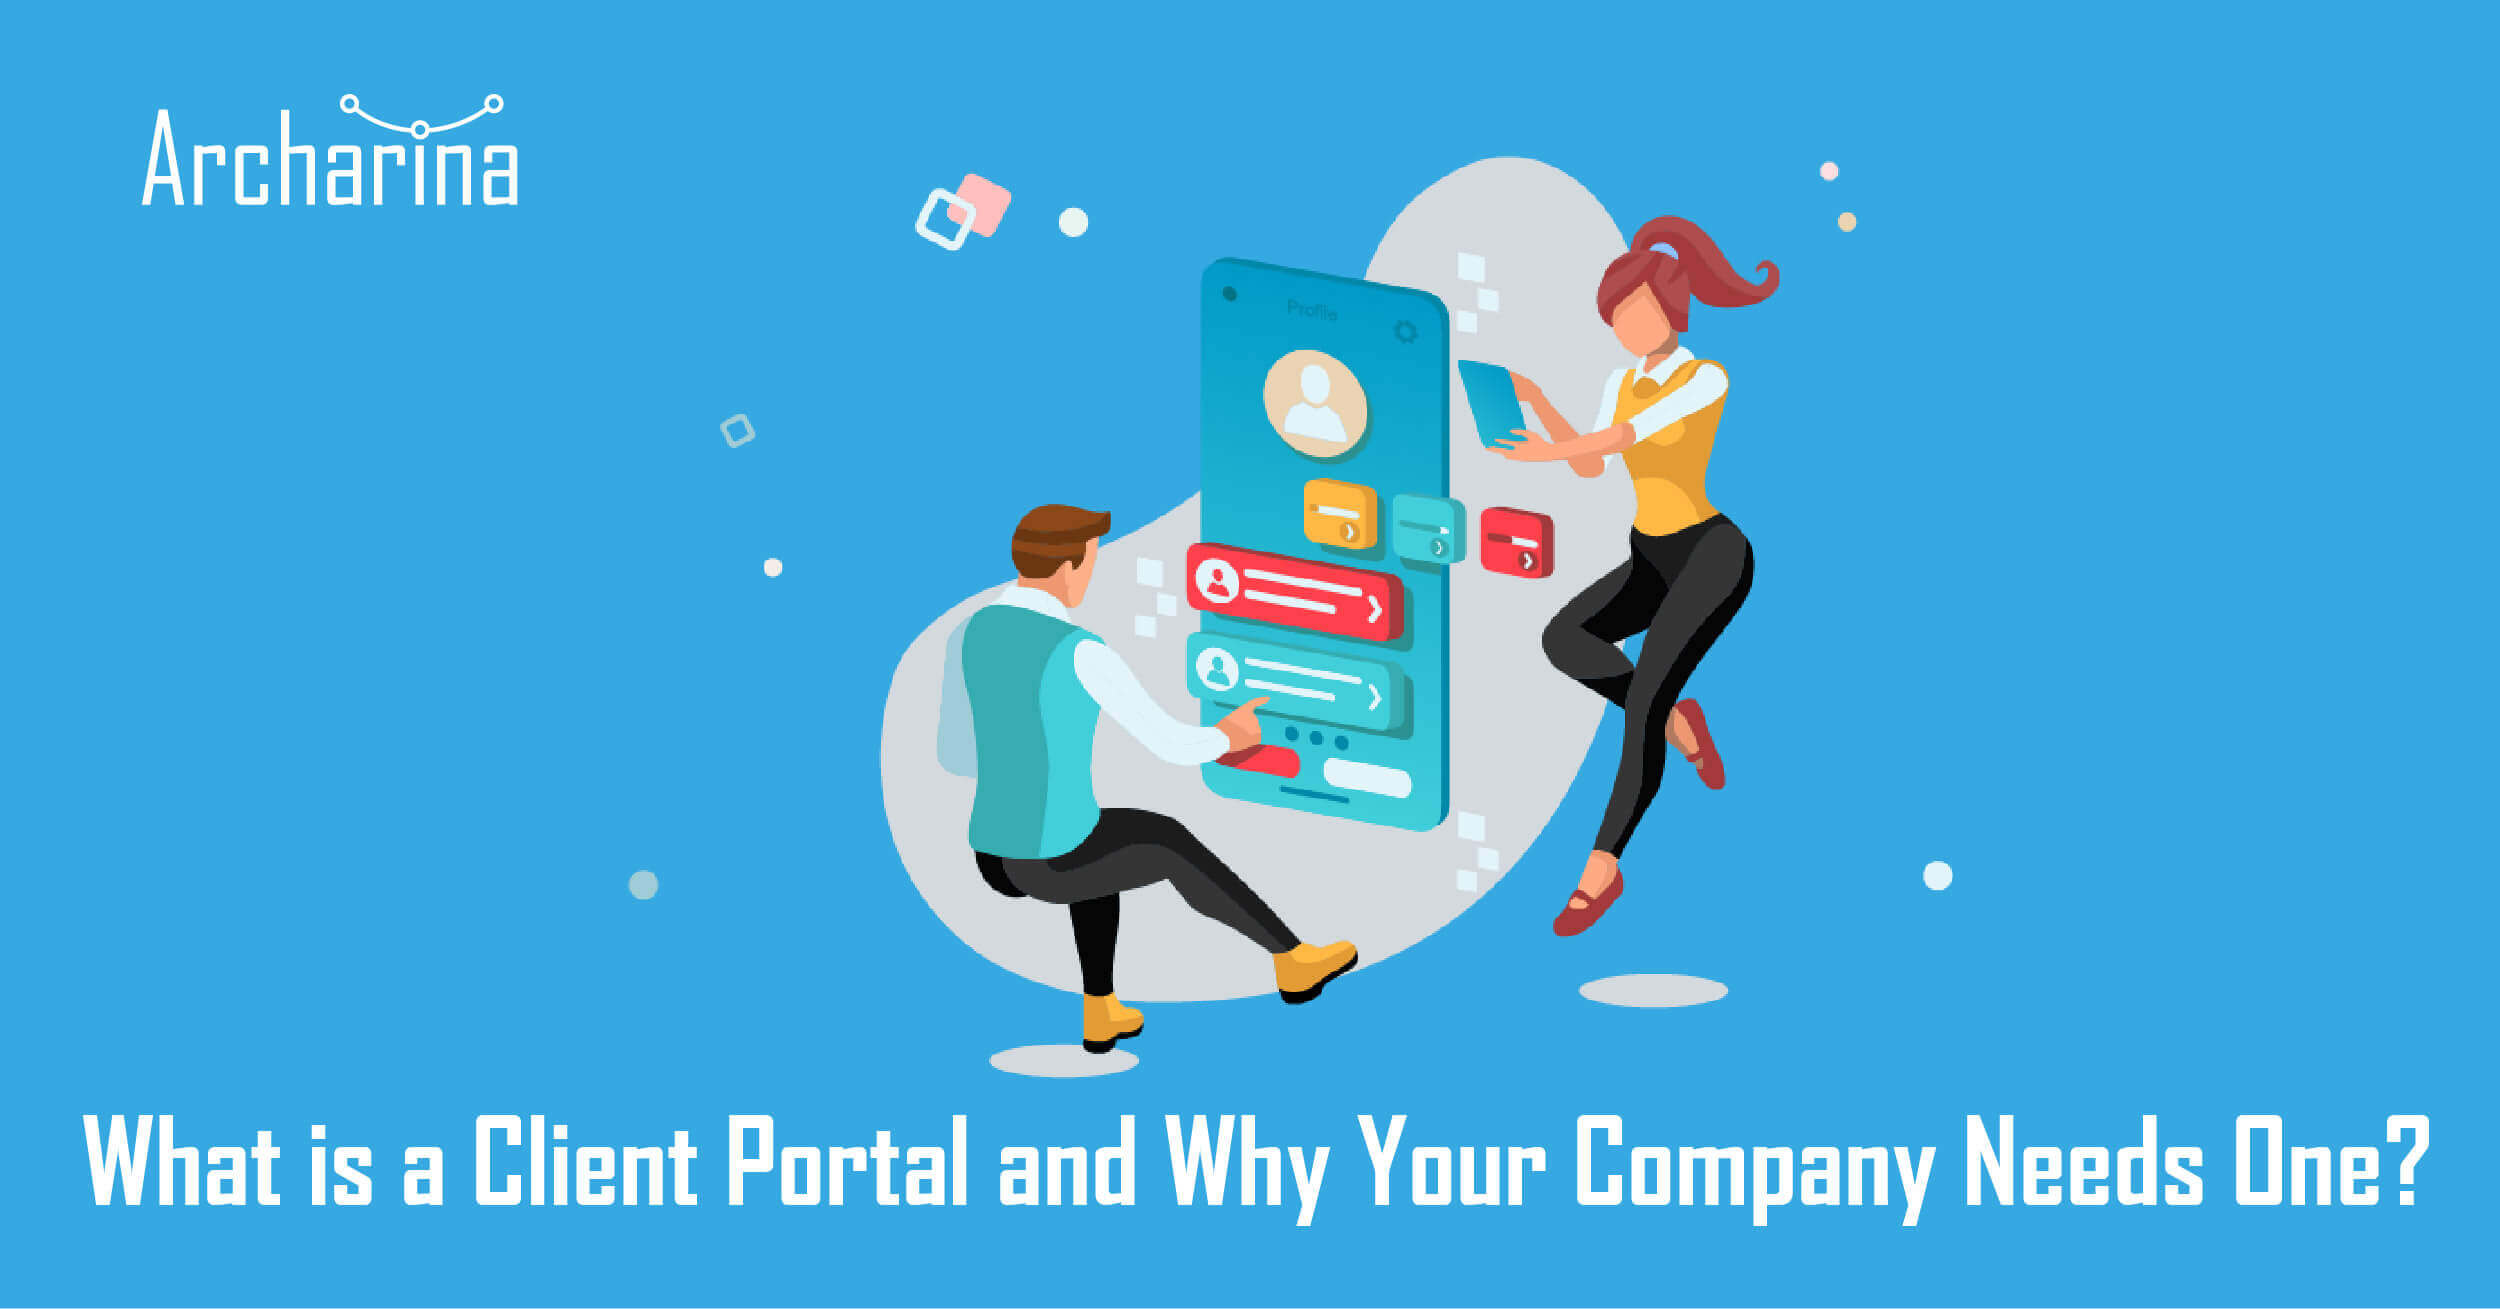 What-is-client-portal-and-why-your-company-needs-one.jpg